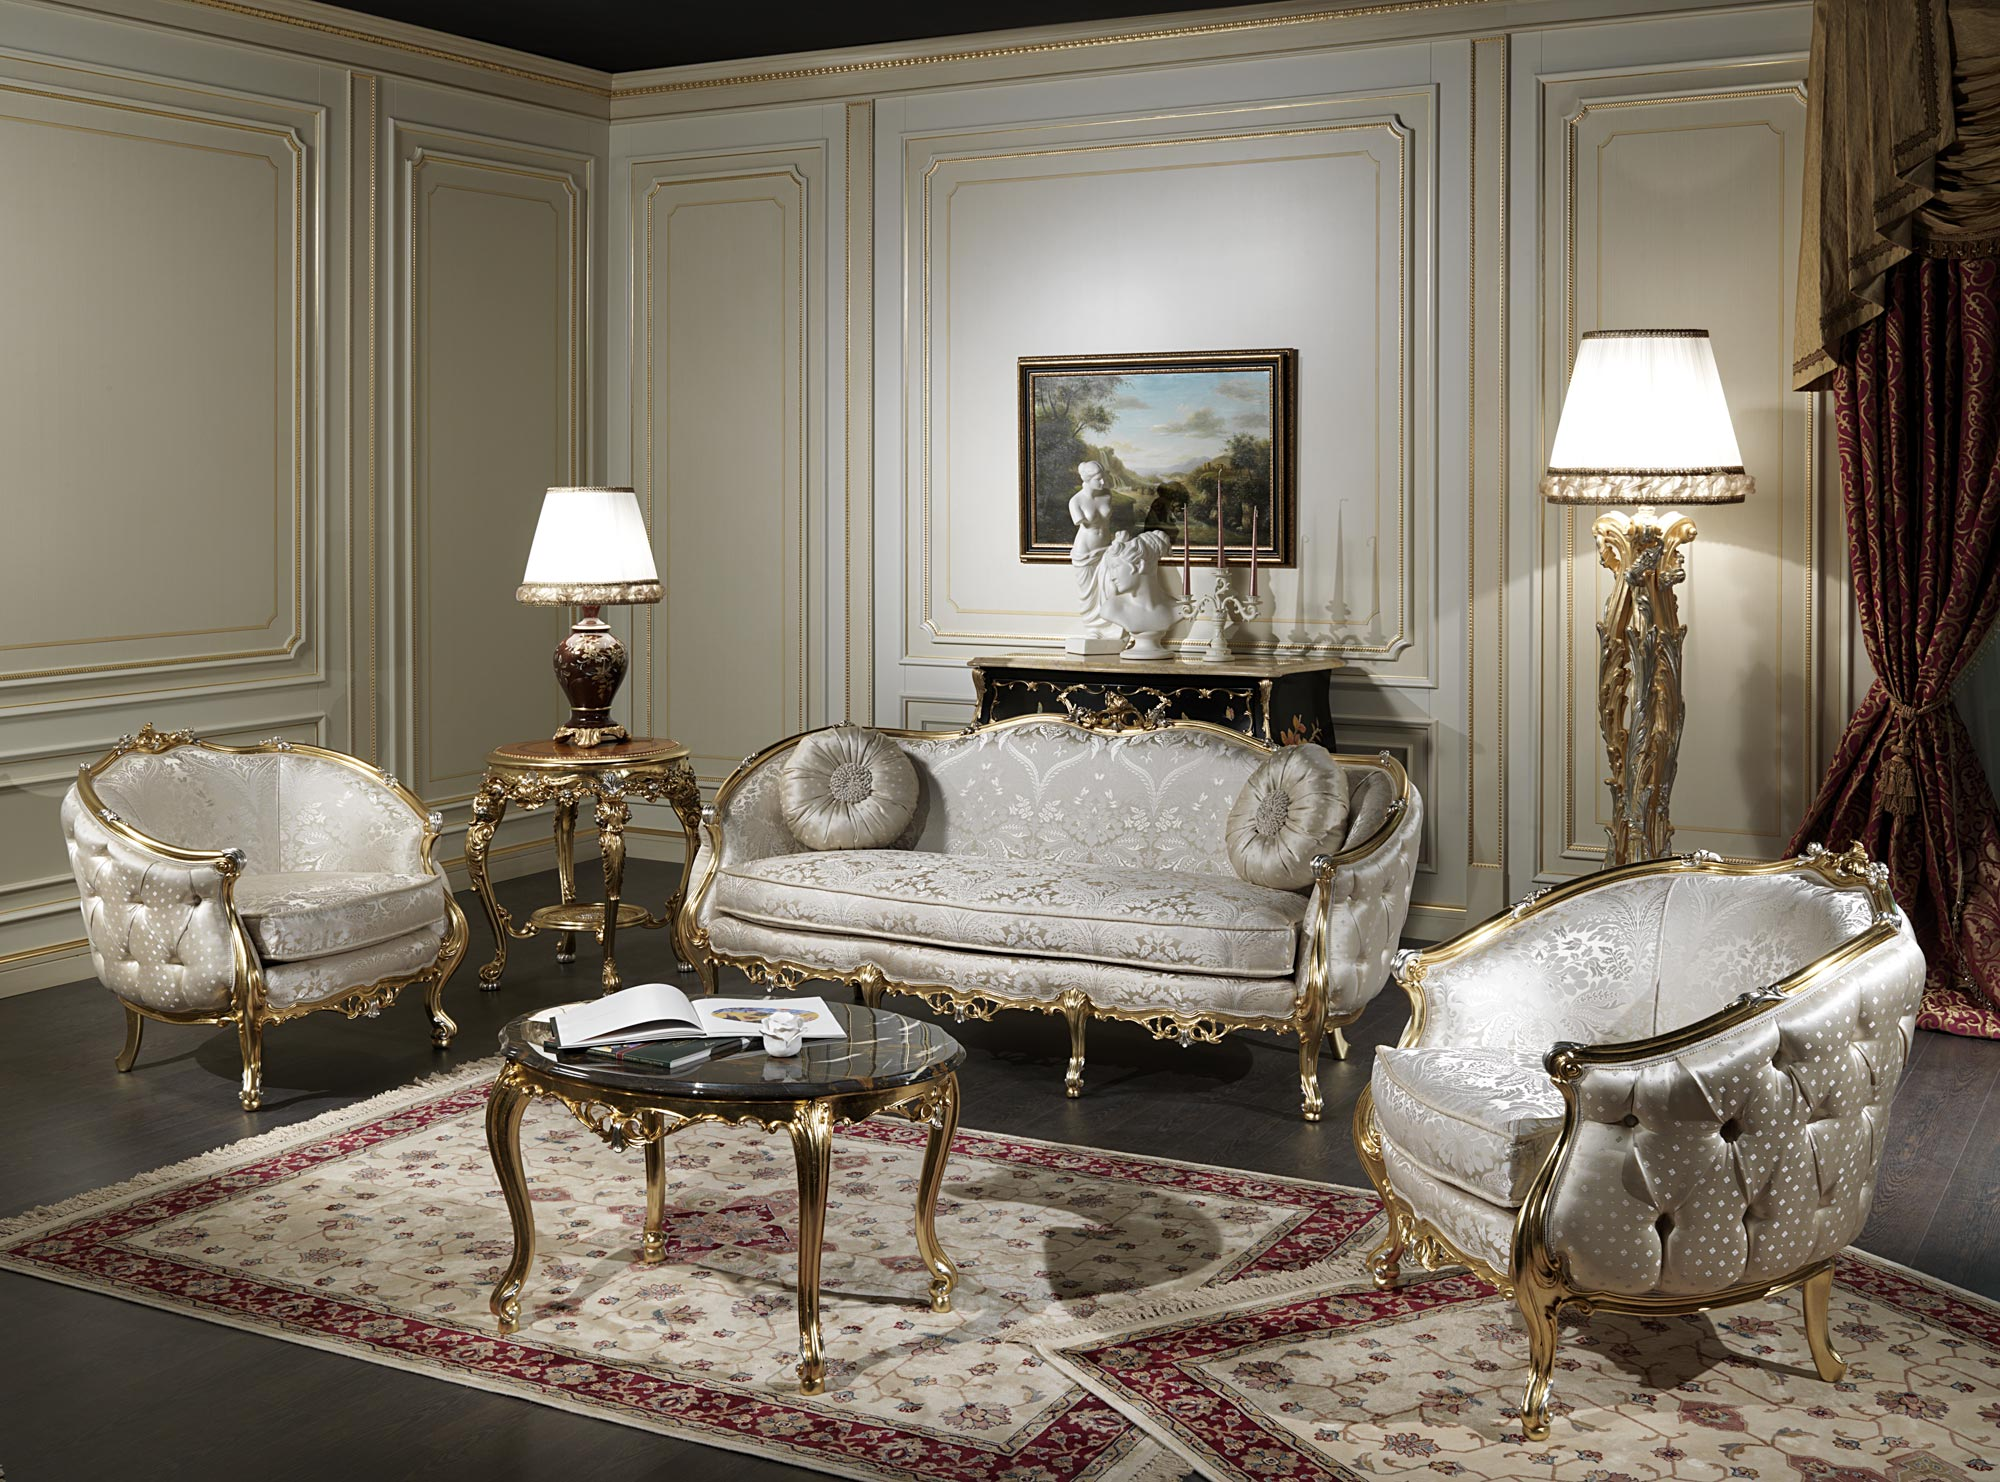 classic living room furniture venezia vimercati classic furniture. Black Bedroom Furniture Sets. Home Design Ideas